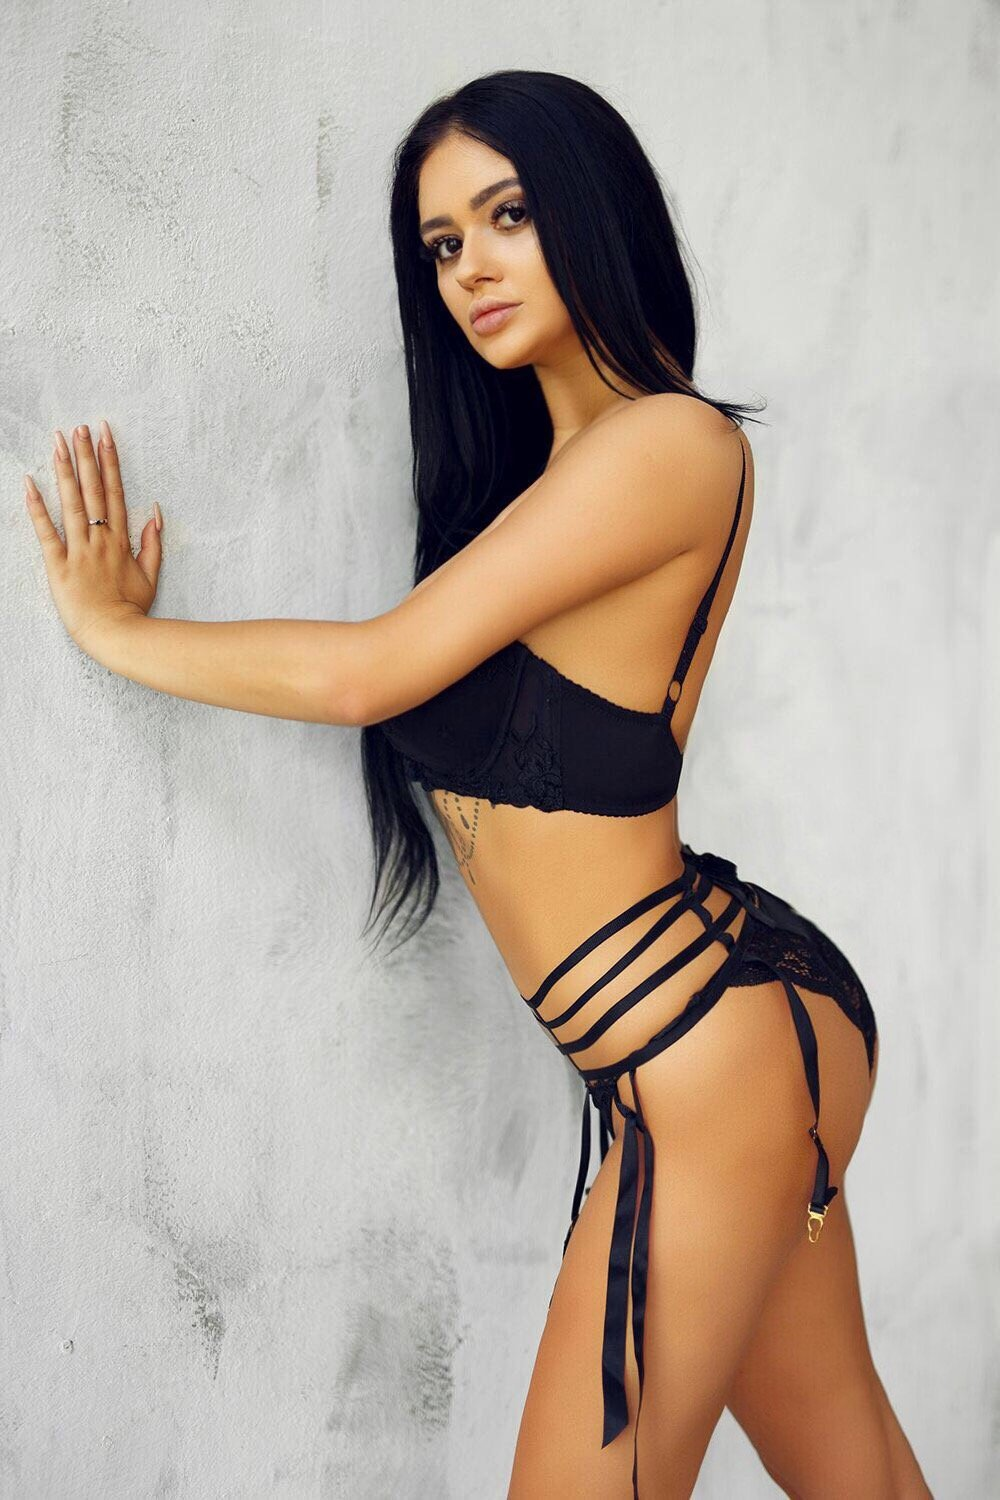 Call Girls Contact In Mumbai Are Always Available At Your Service